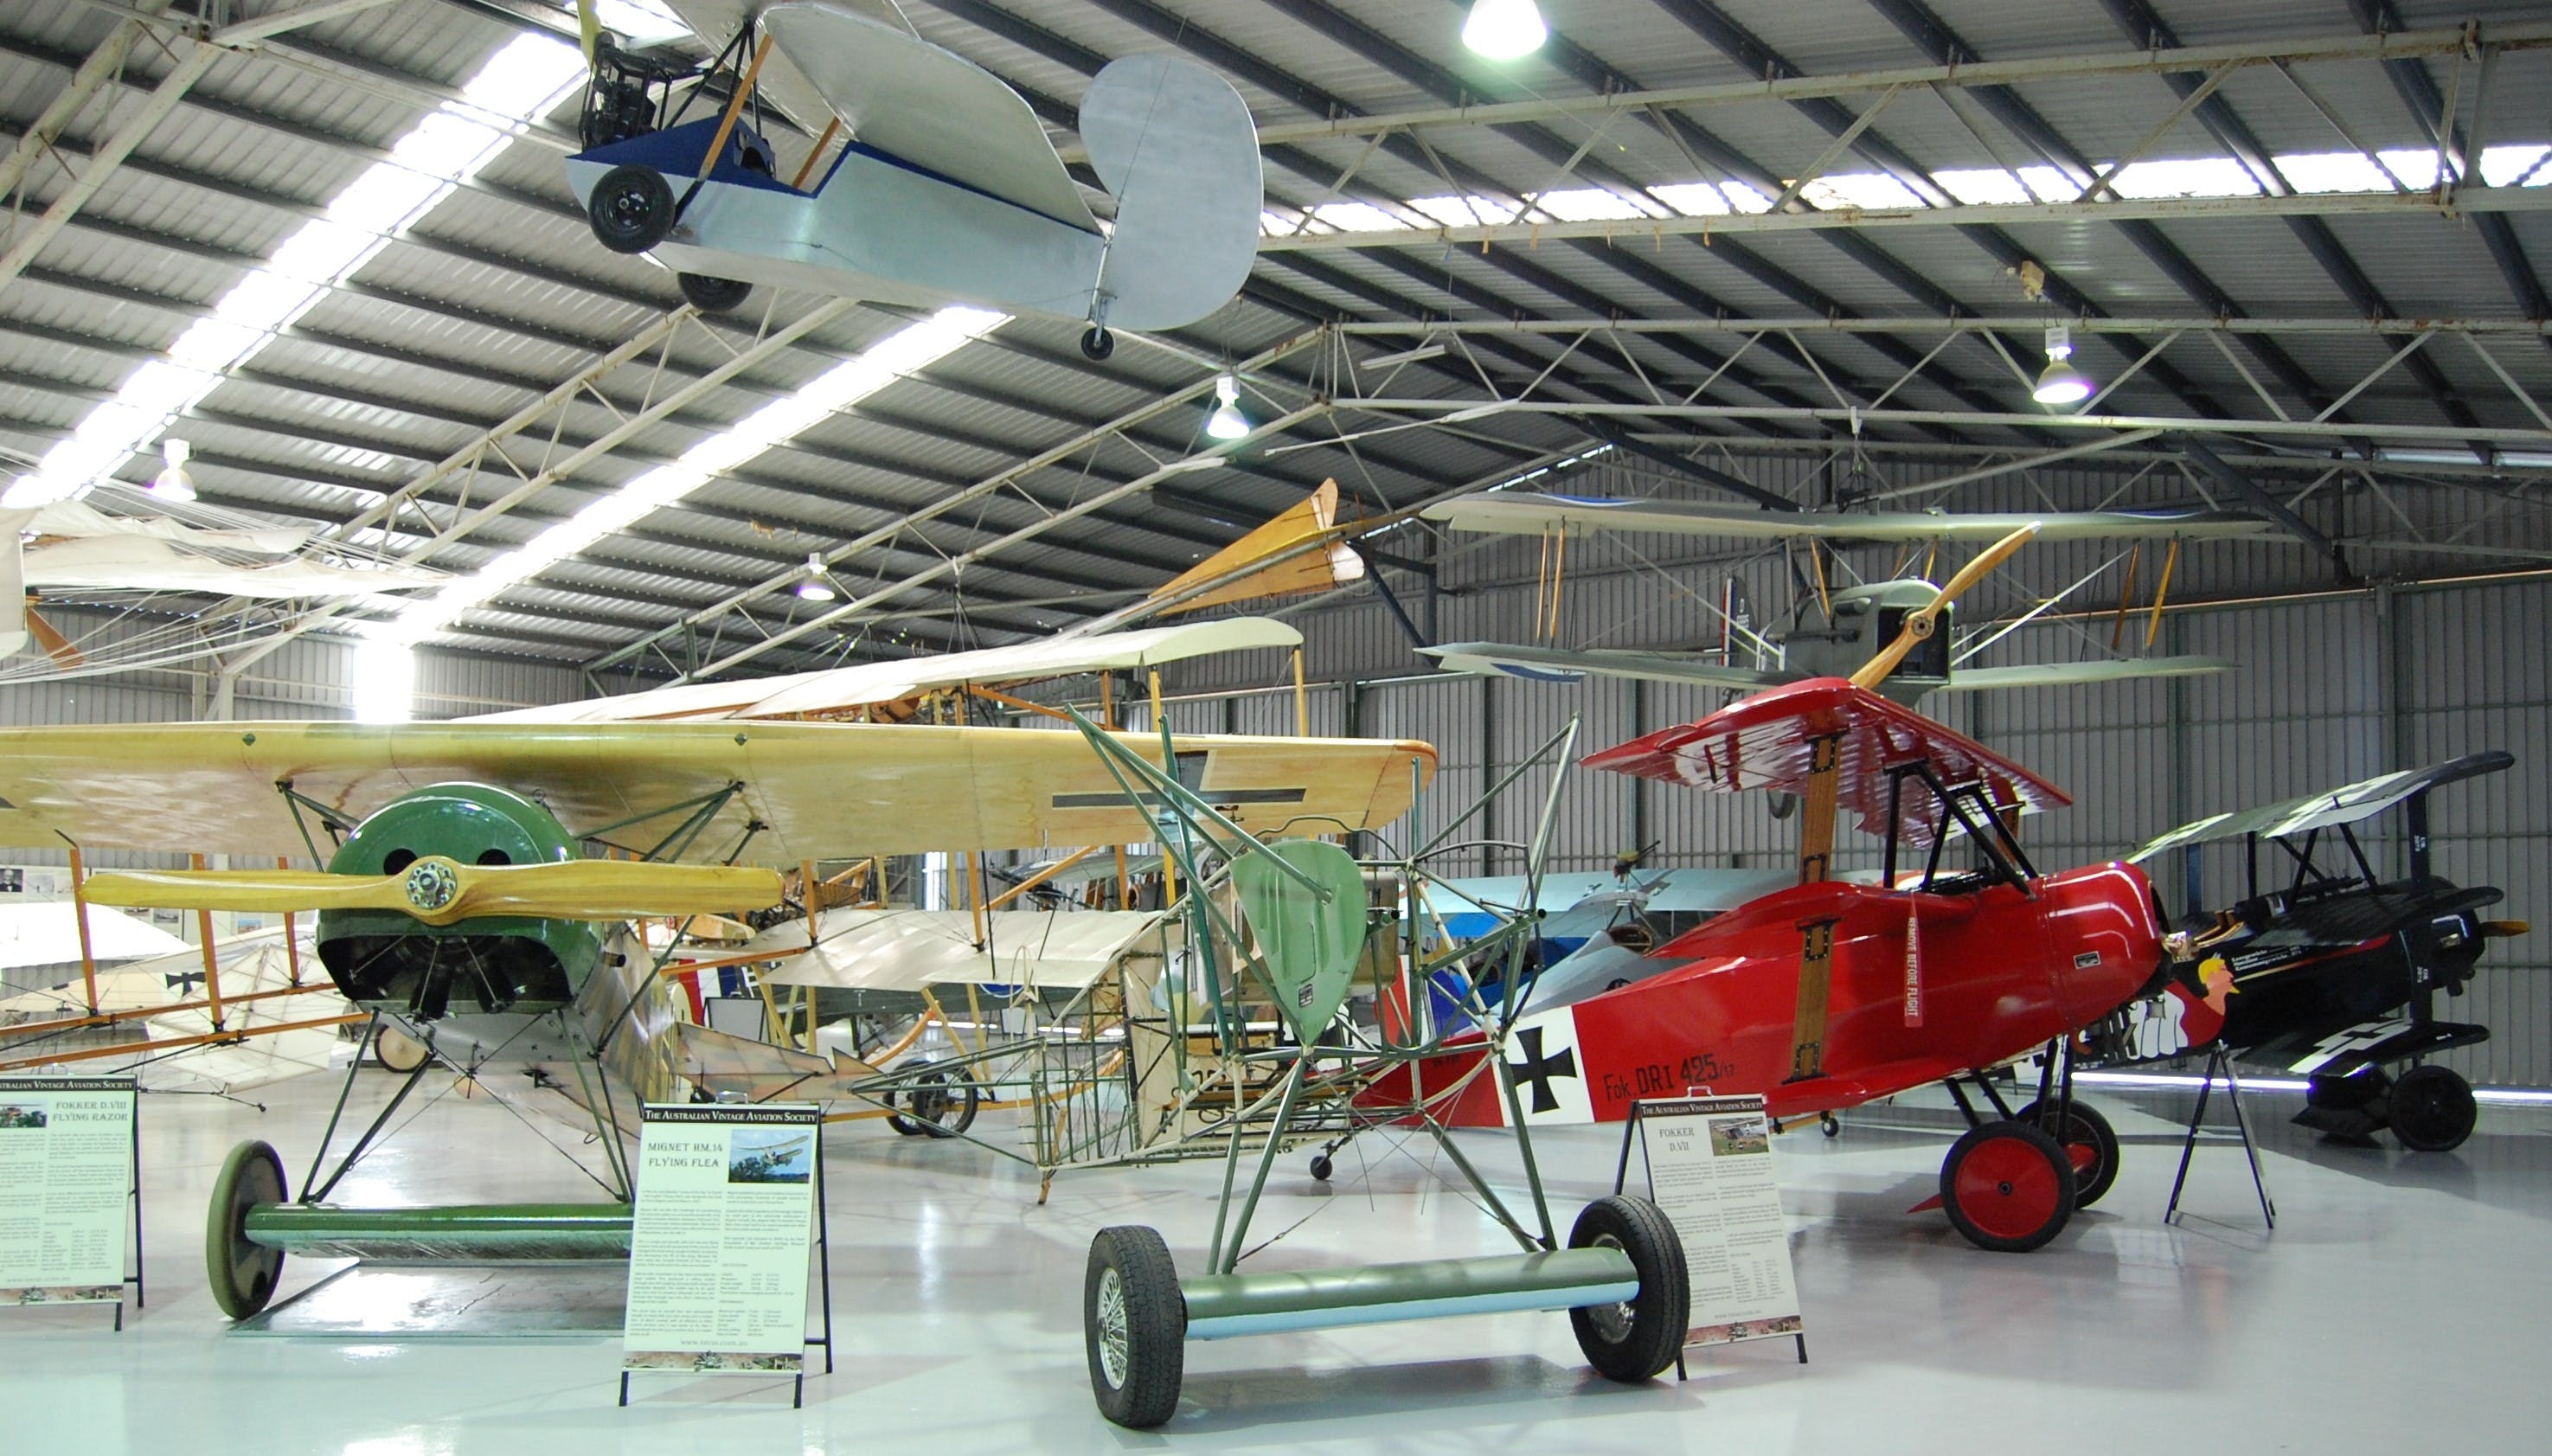 The Australian Vintage Aviation Society Museum - Accommodation Coffs Harbour